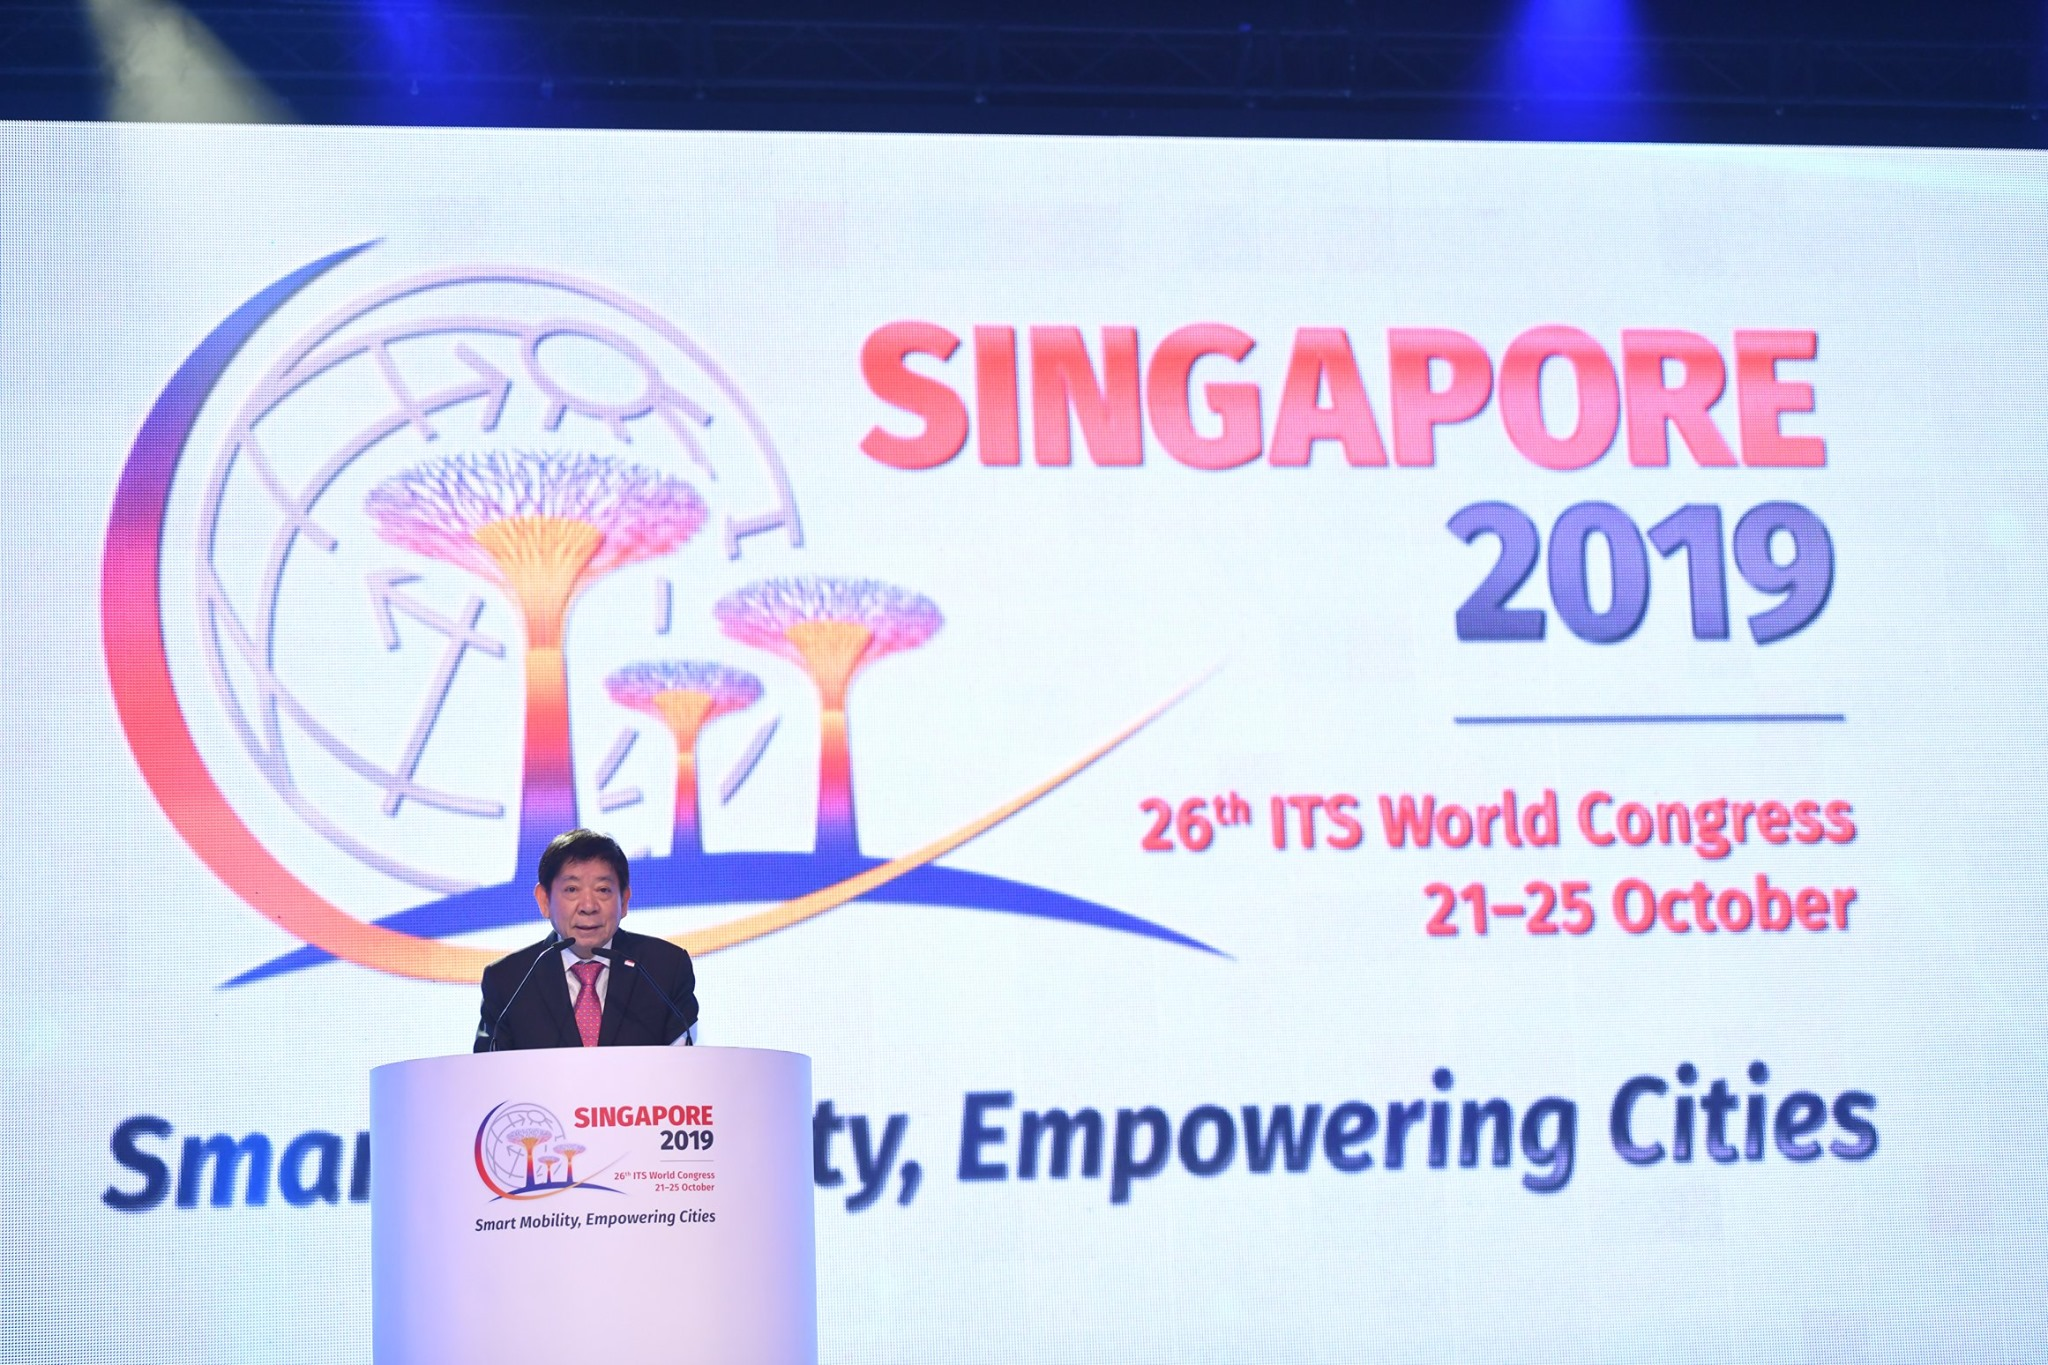 Singapore's Coordinating Minister for Infrastructure and Transport Minister Khaw Boon Wan speaking at the 26th Intelligent Transport Systems (ITS) World Congress. Photo courtesy: ITS World Congress